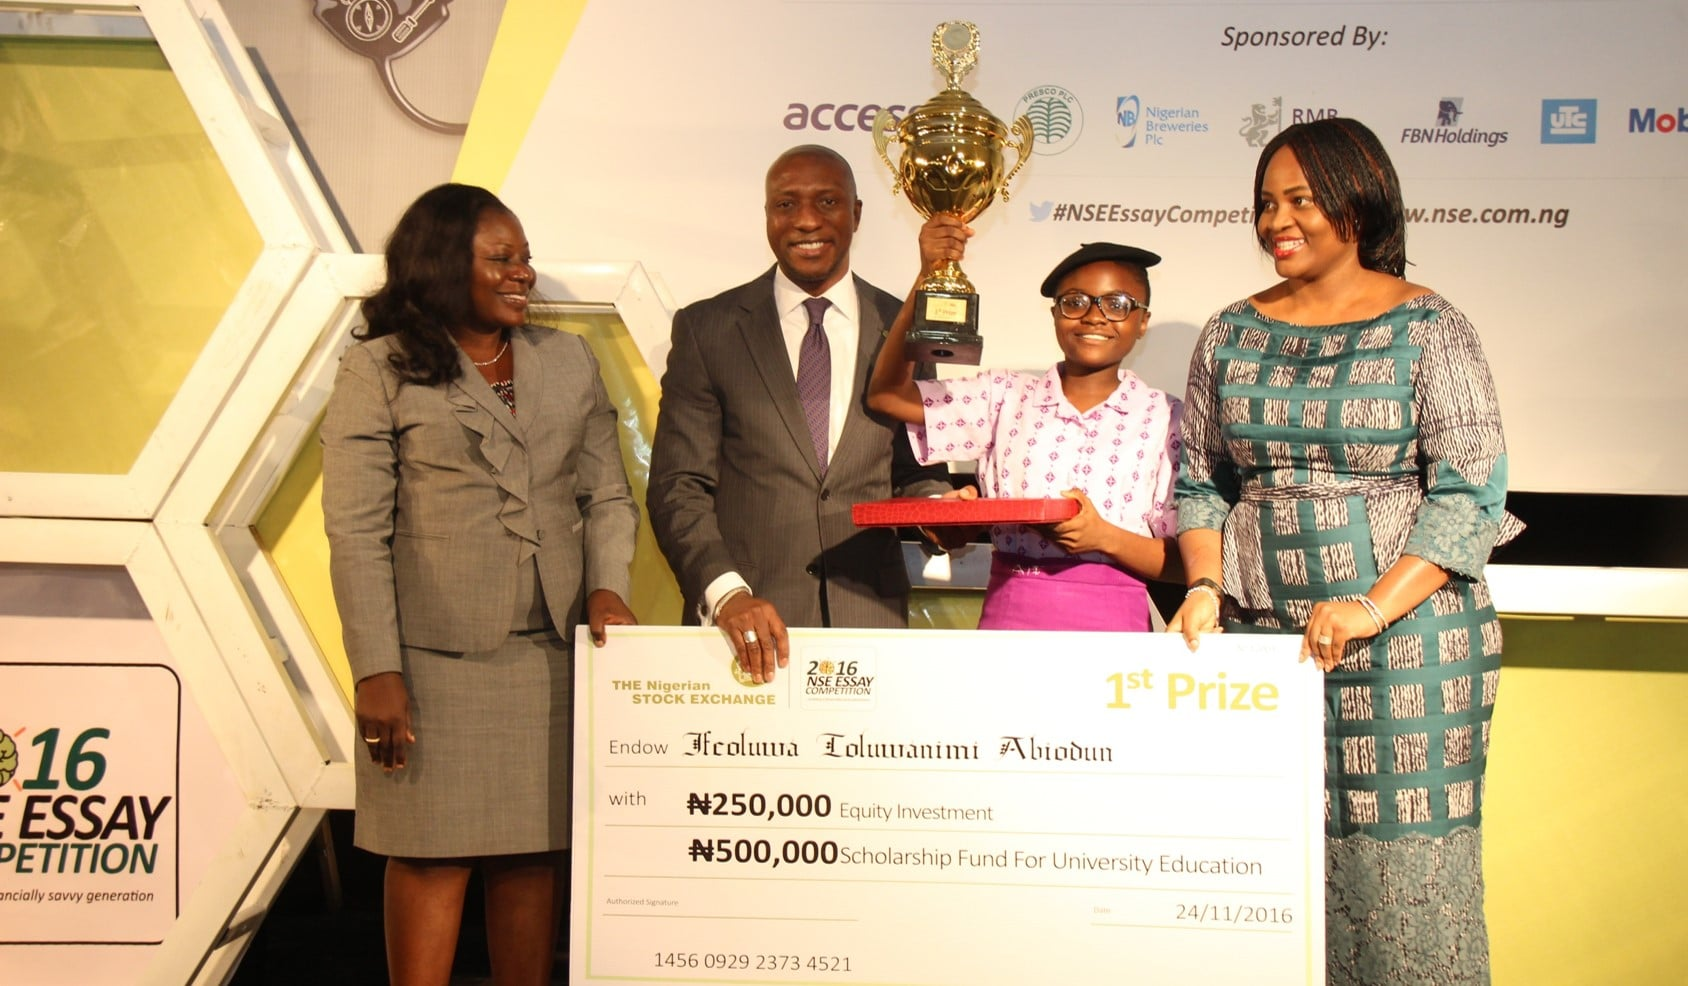 nigerian stock exchange essay competition Detailed procedure on how to enter for the 2015 edition of the nigerian stock exchange (nse) essay competition the.